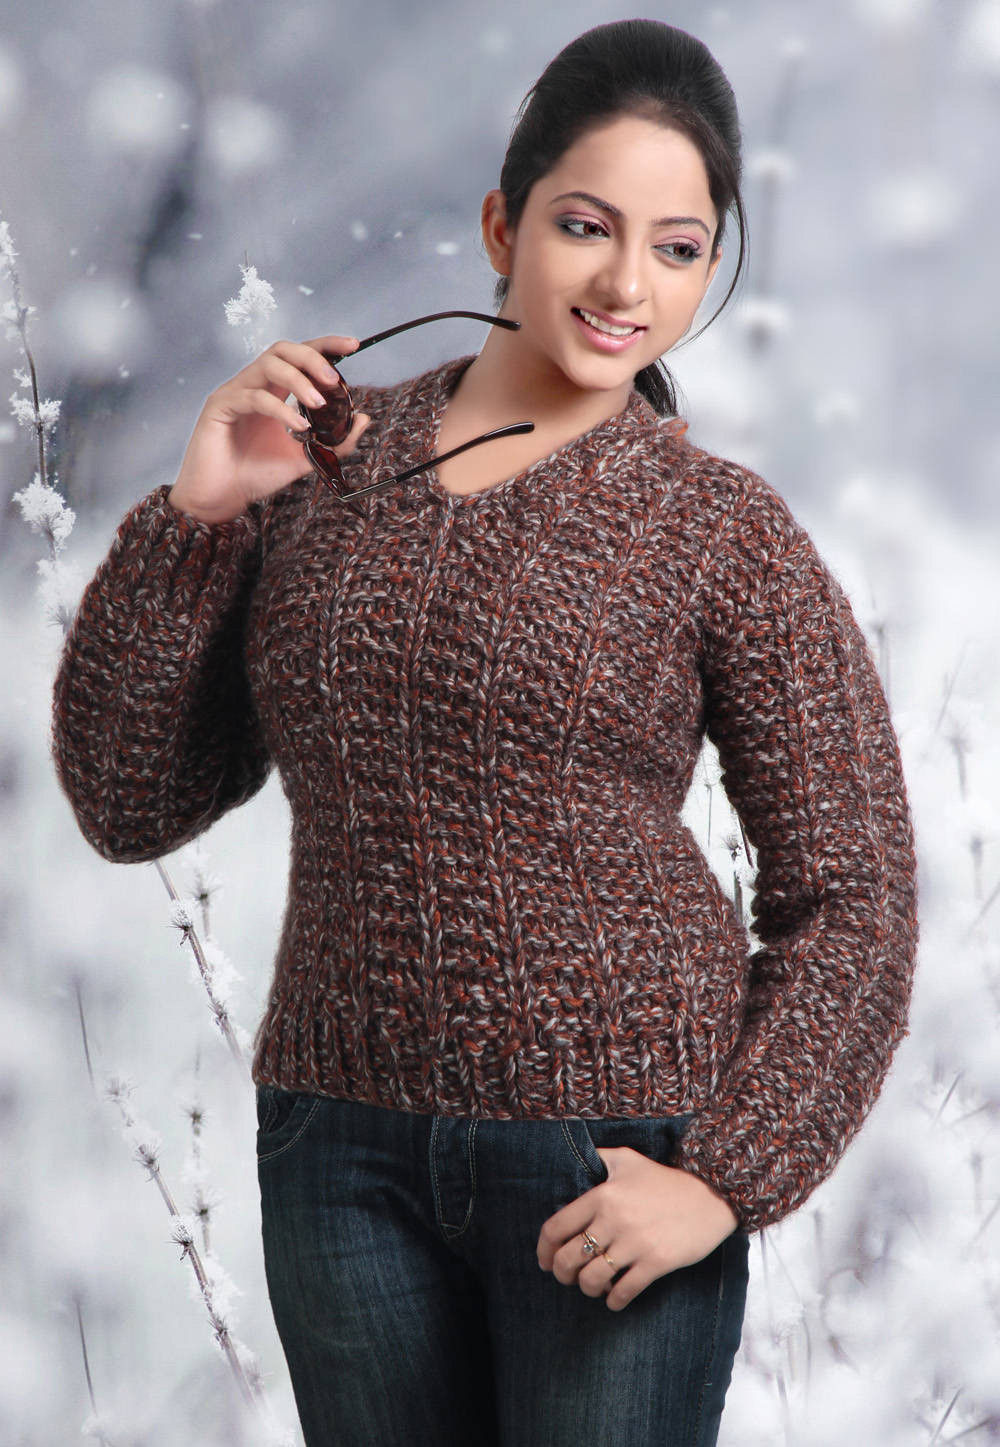 Acro Woolen Hand Knitted Cardigan in Brown